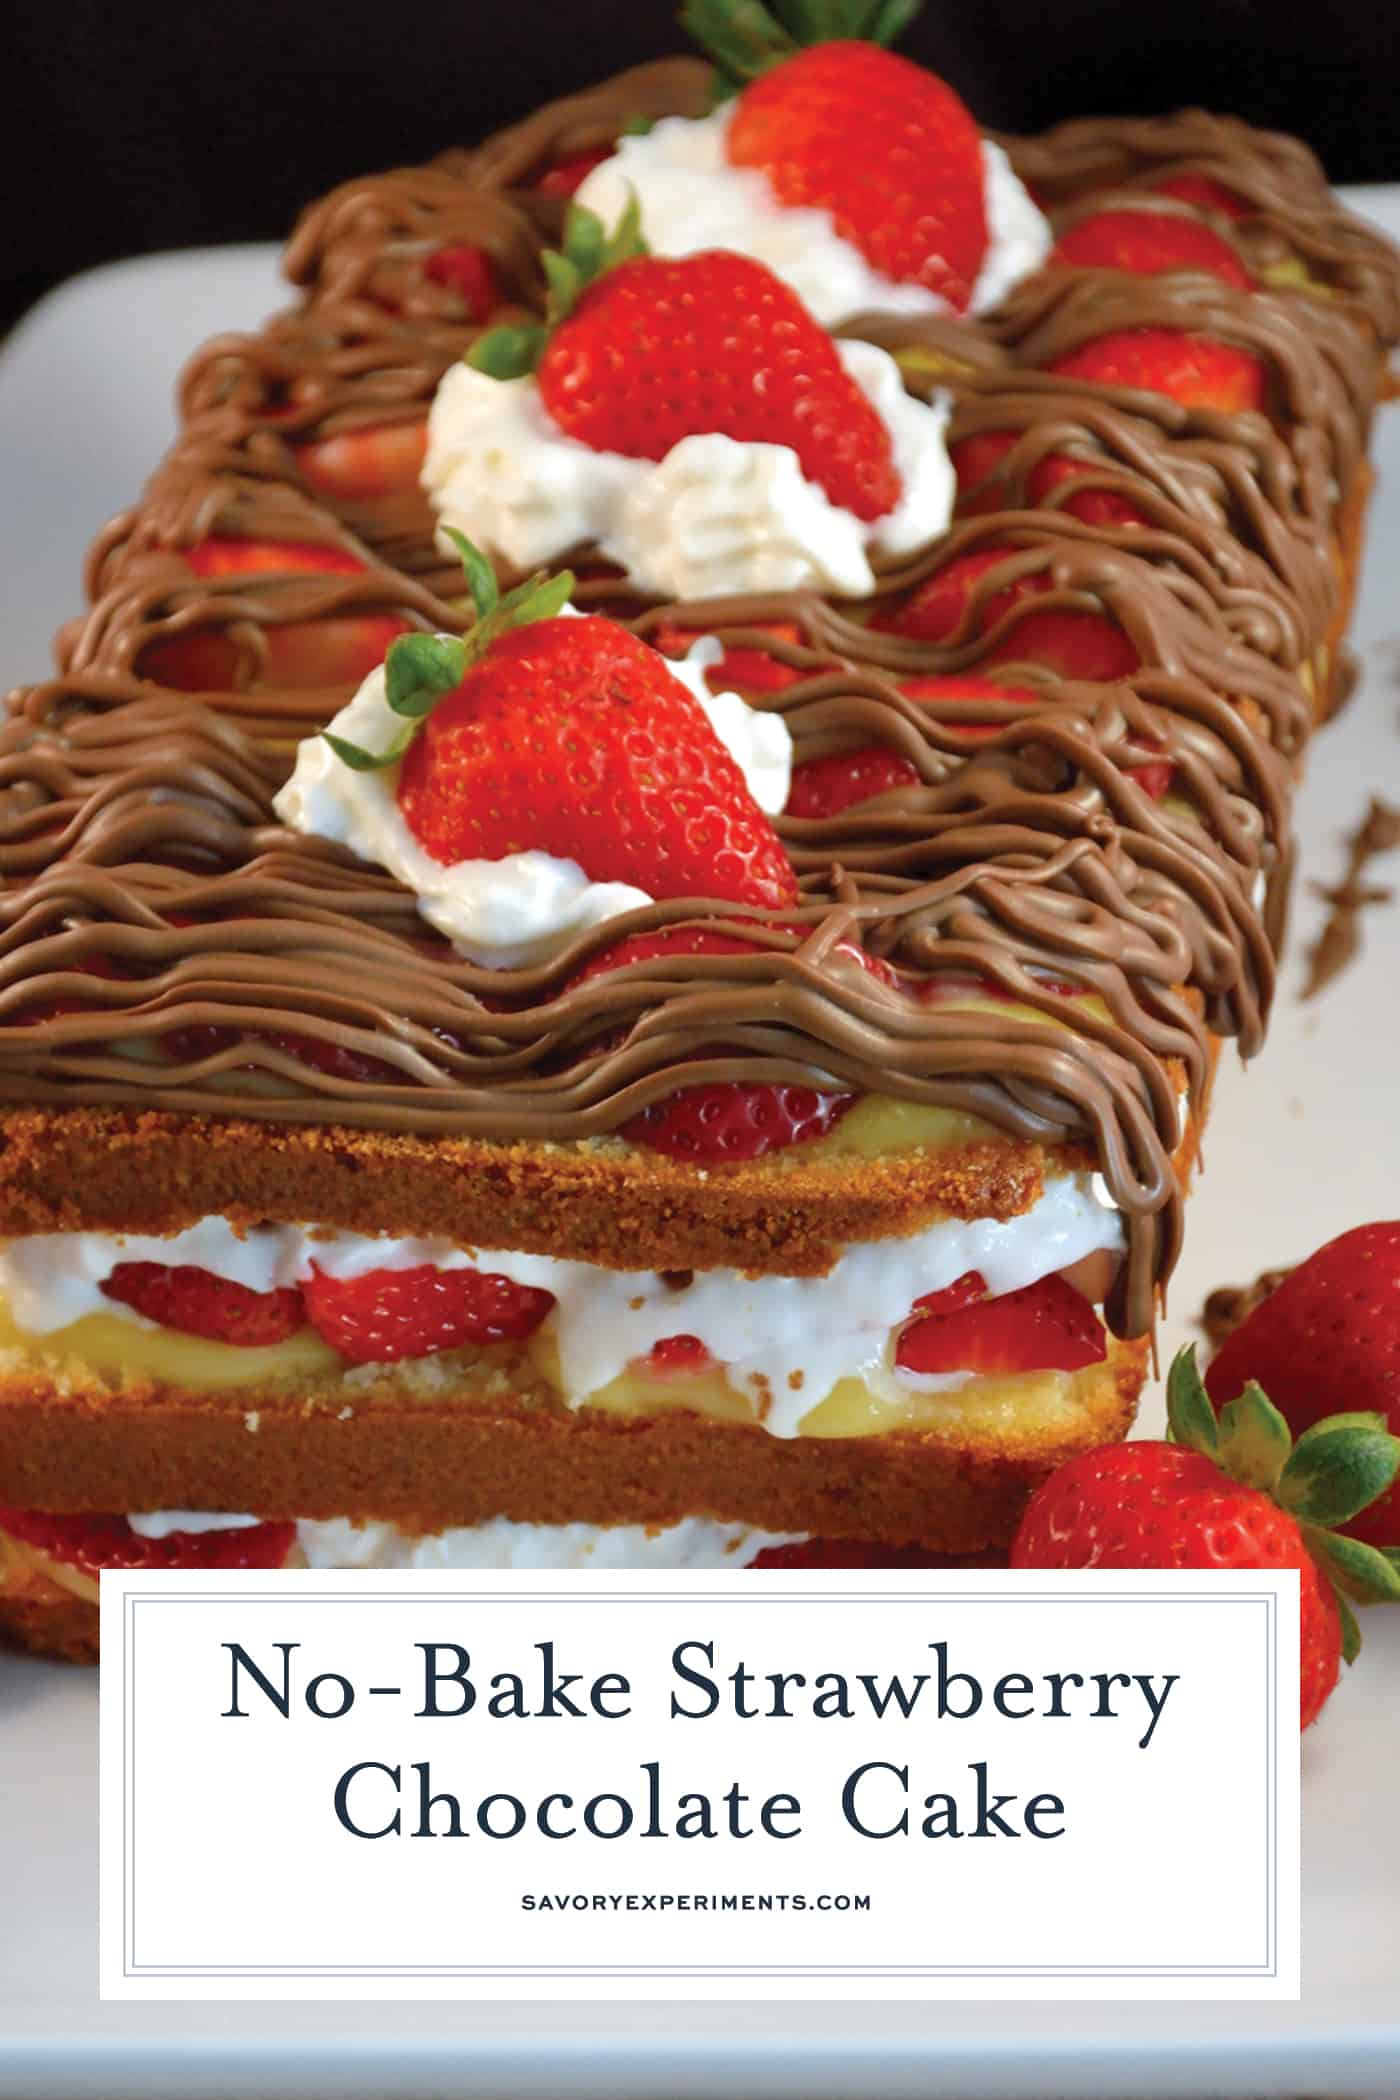 No-Bake Chocolate Strawberry Cake combines layers of pound cake with fresh strawberries, milk chocolate and whipped cream. It can be made ahead and is perfect for parties! #nobakecake #nobakedesserts www.savoryexperiments.com